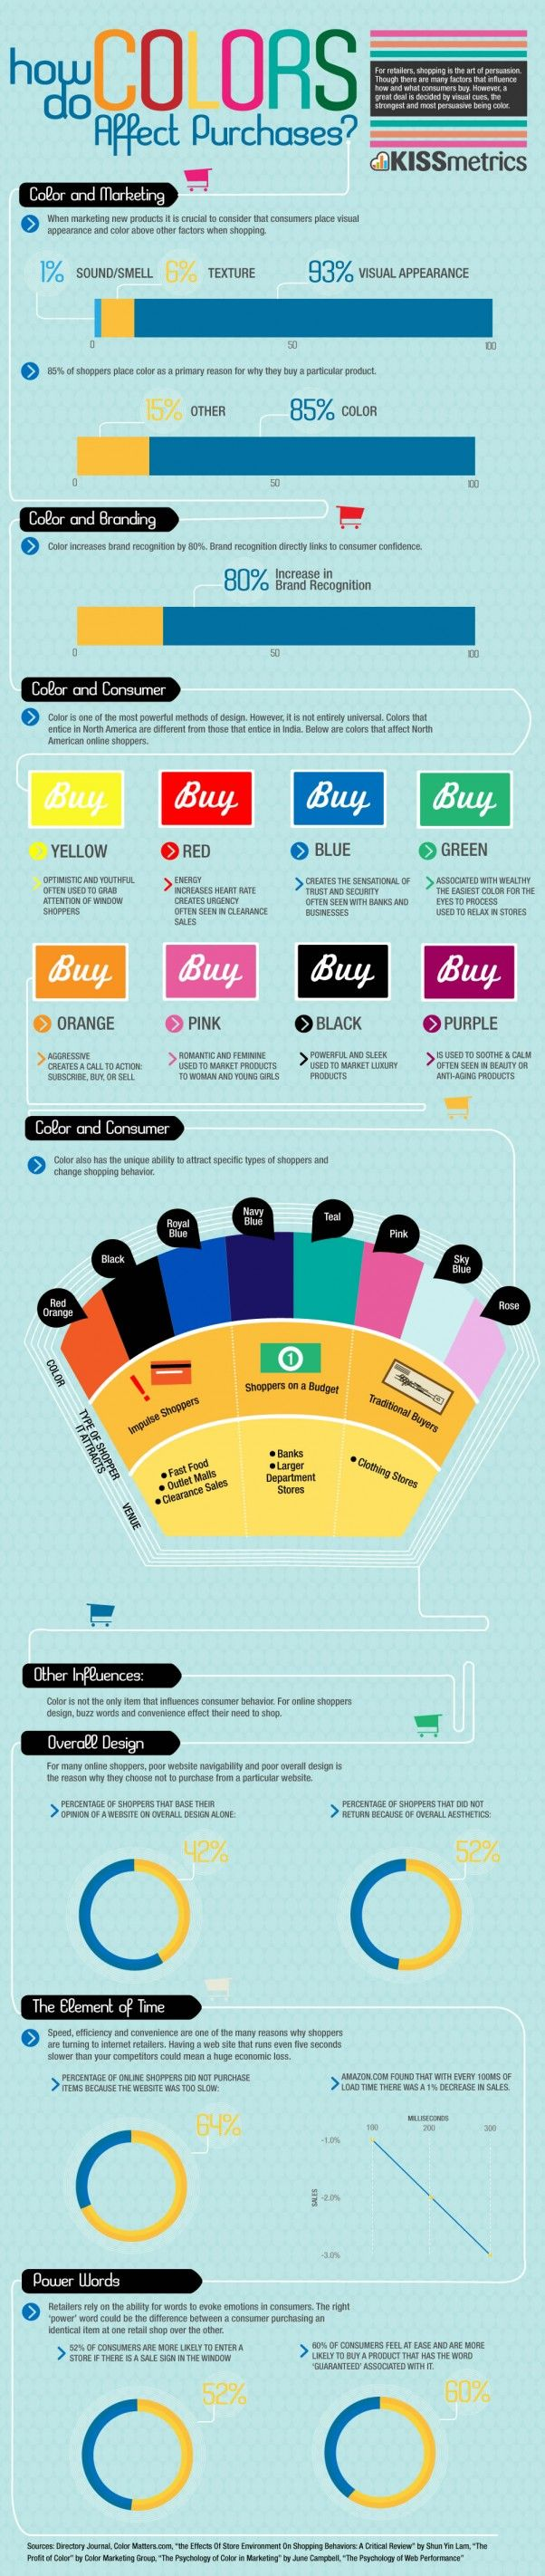 How Do Colors Affect Purchases [infographic]Web Design, Marketing, Social Media, Colors Psychology, Socialmedia, Infographic, Affection Purchase, Colors Affection, Colours